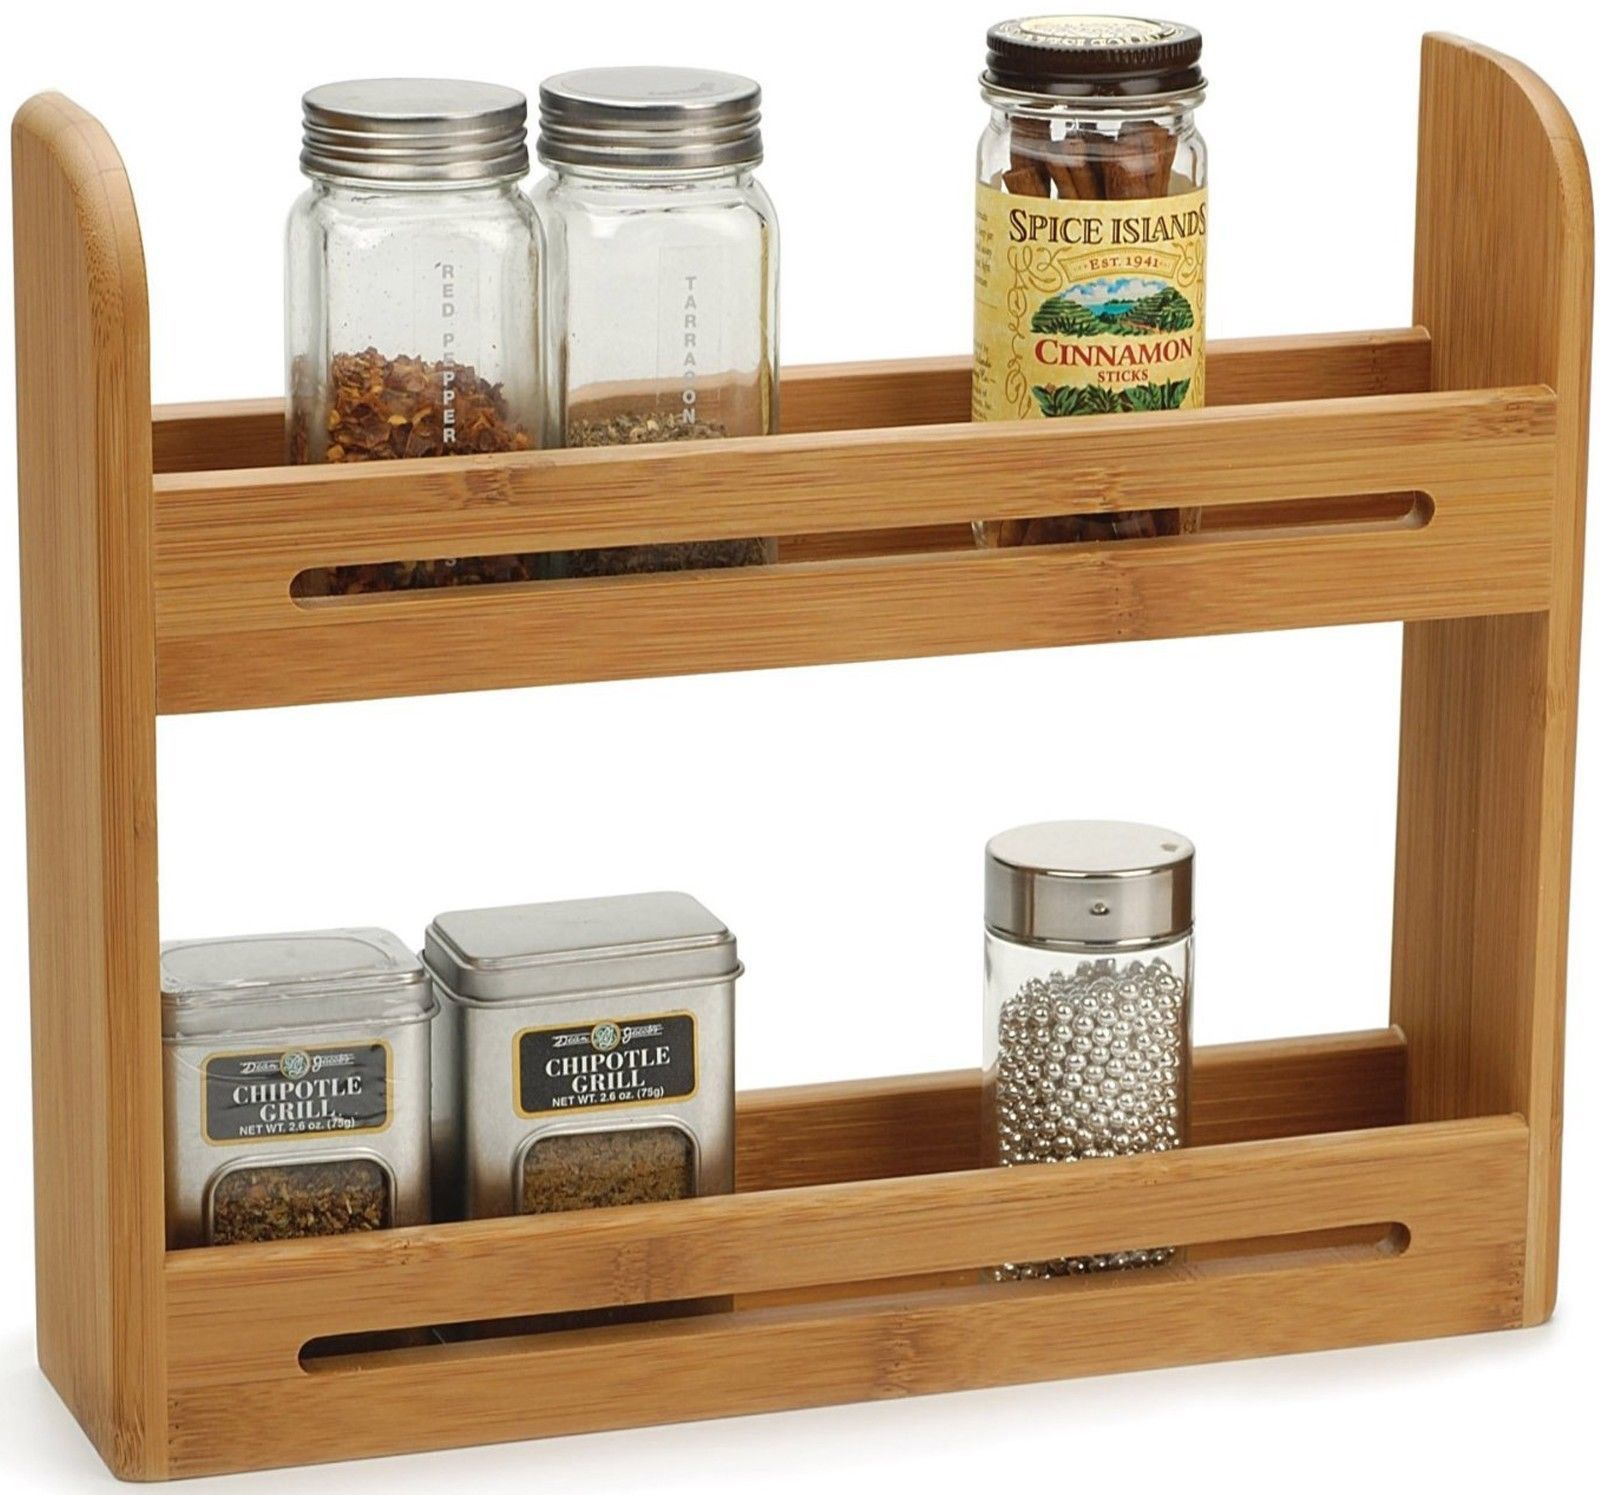 Wall Mount Spice Racks For Kitchen Ideas